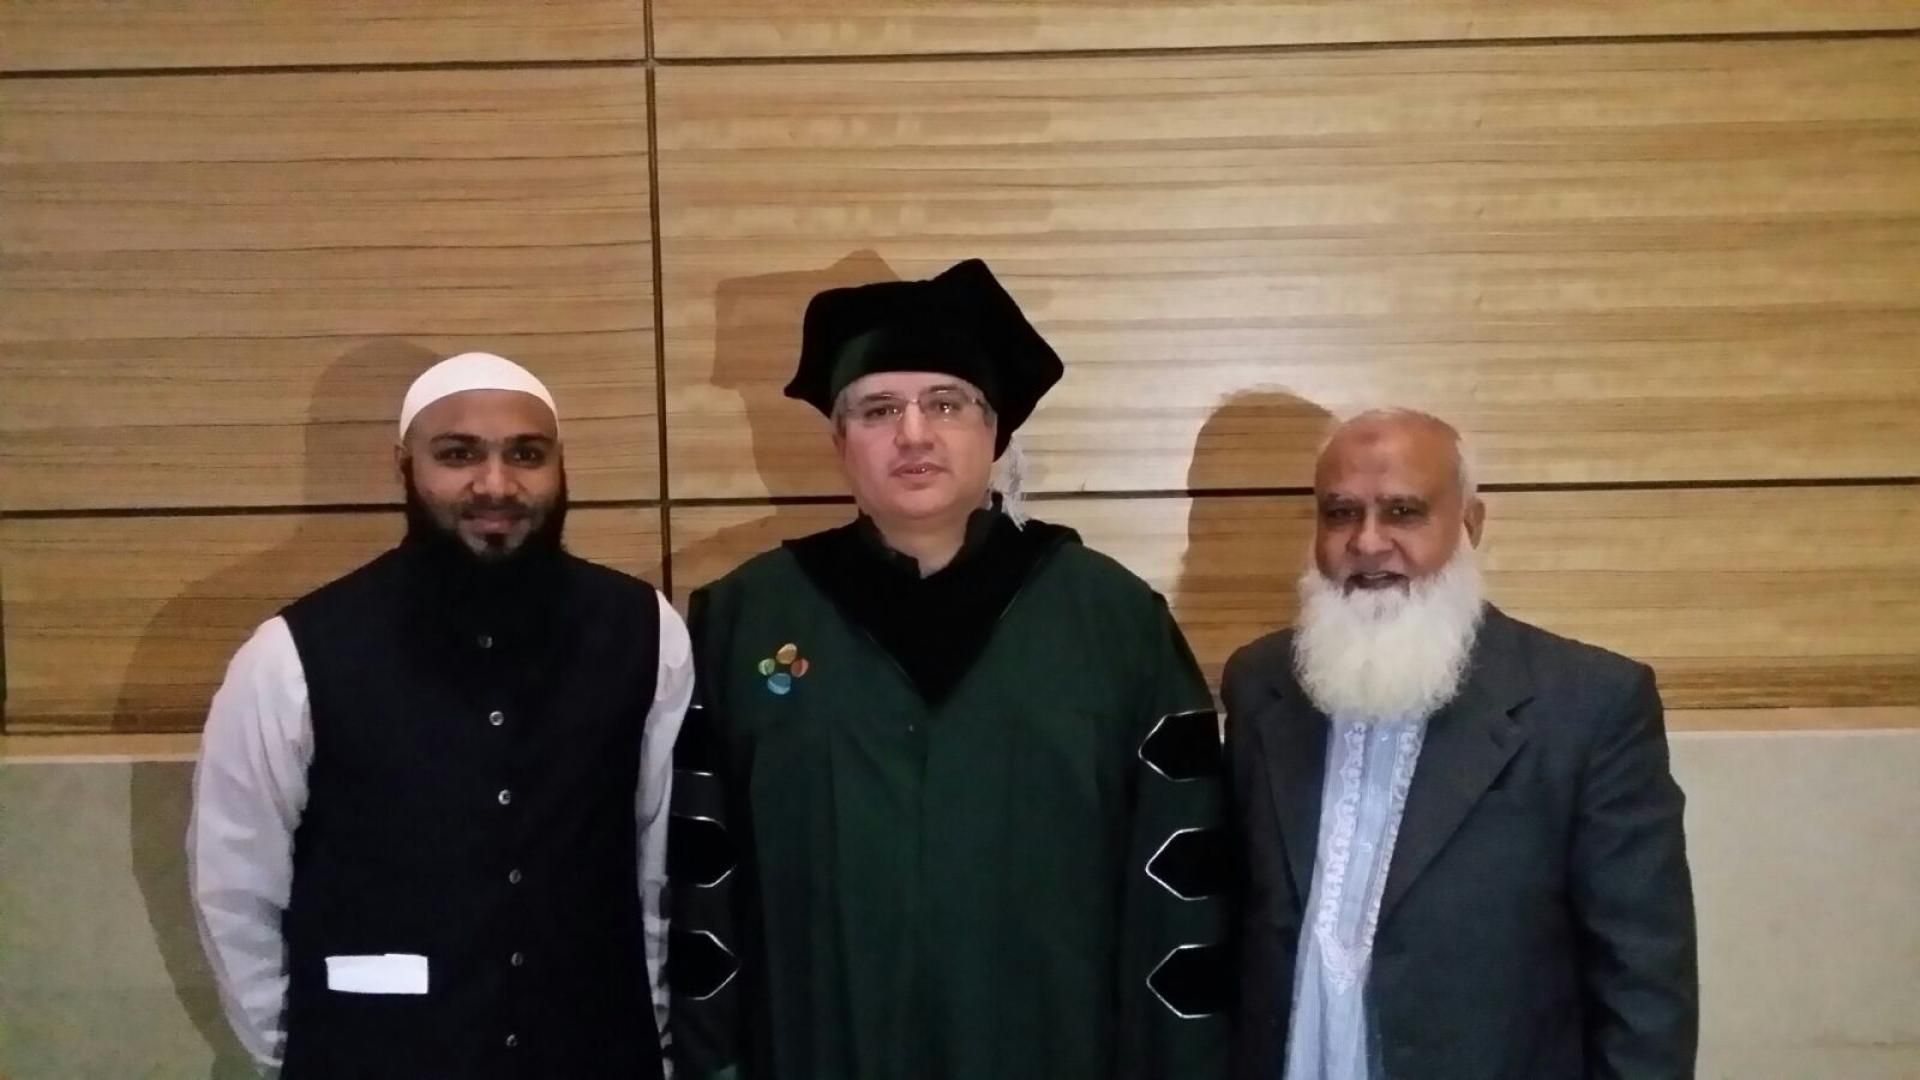 Professor Alouini with Imran Ansari and his father during graduation ceremony